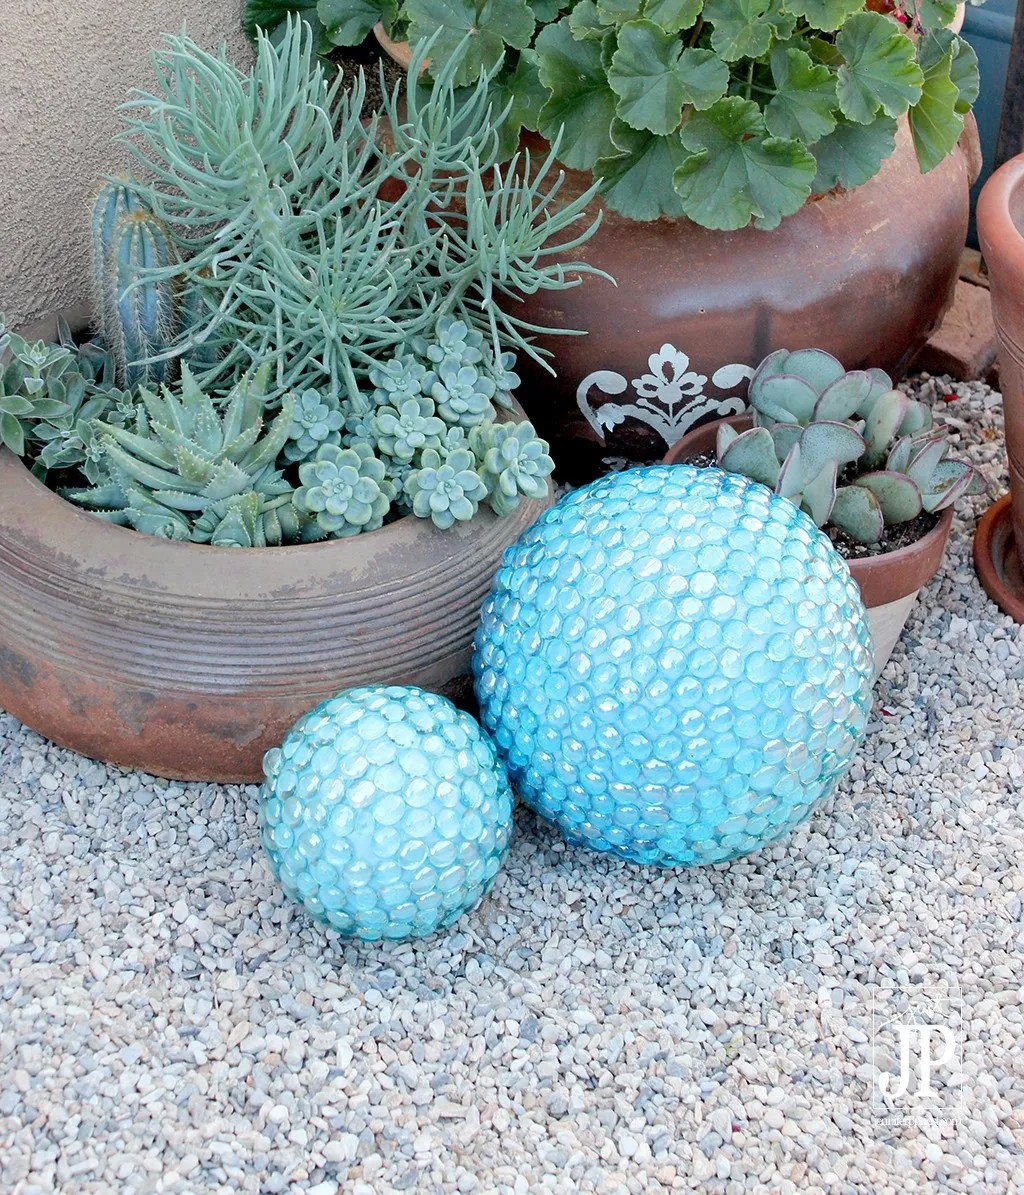 Jennifer shows how to make these fun faux gazing ball for your garden using Smoothfoam balls and half balls, mosaic pebbles, and acrylic paint!